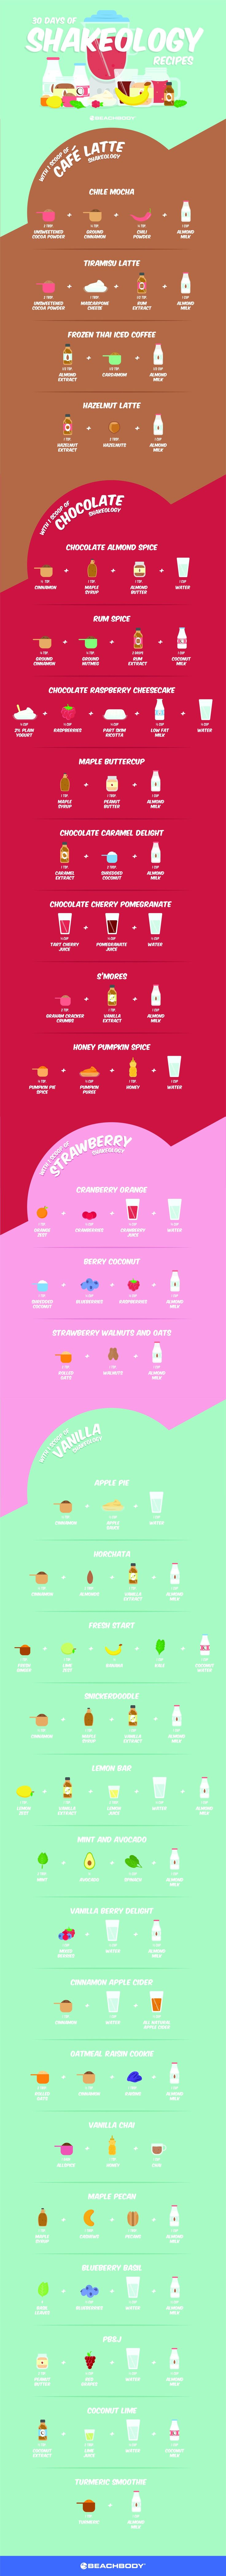 best Healthy images on Pinterest  Exercises Health and Healthy